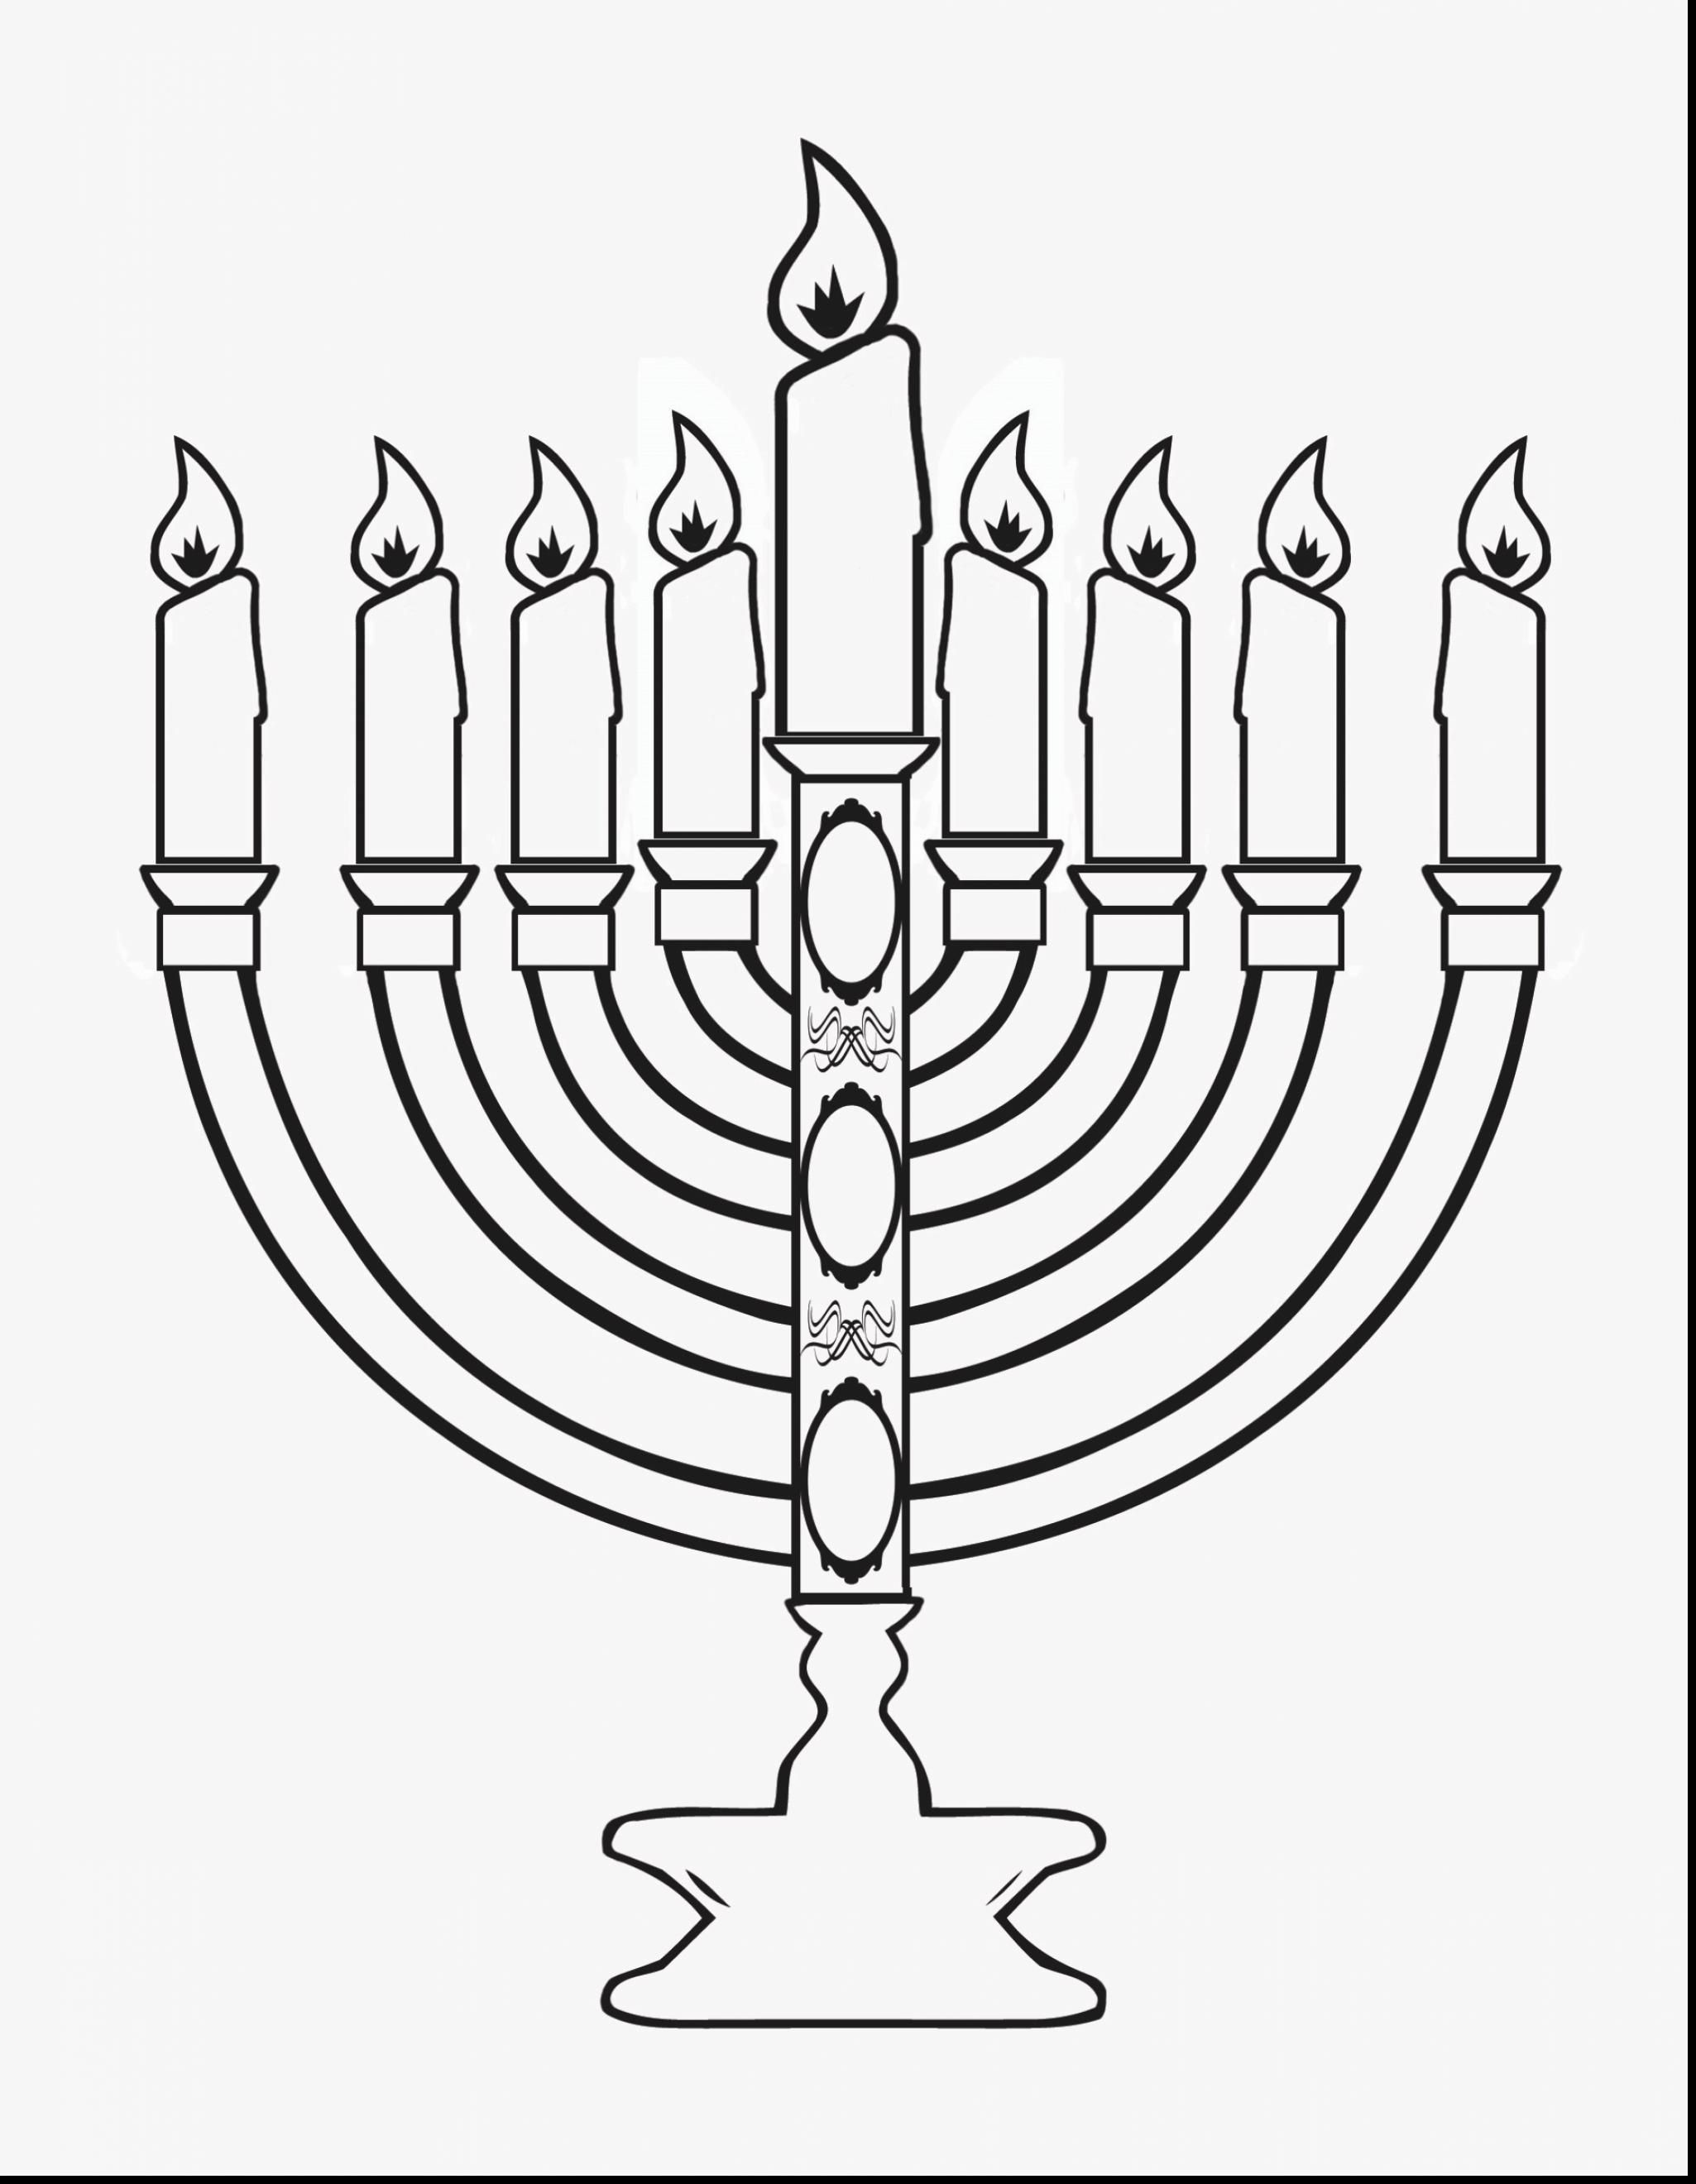 Hanukkah Clipart Color Hanukkah Color Transparent Free For